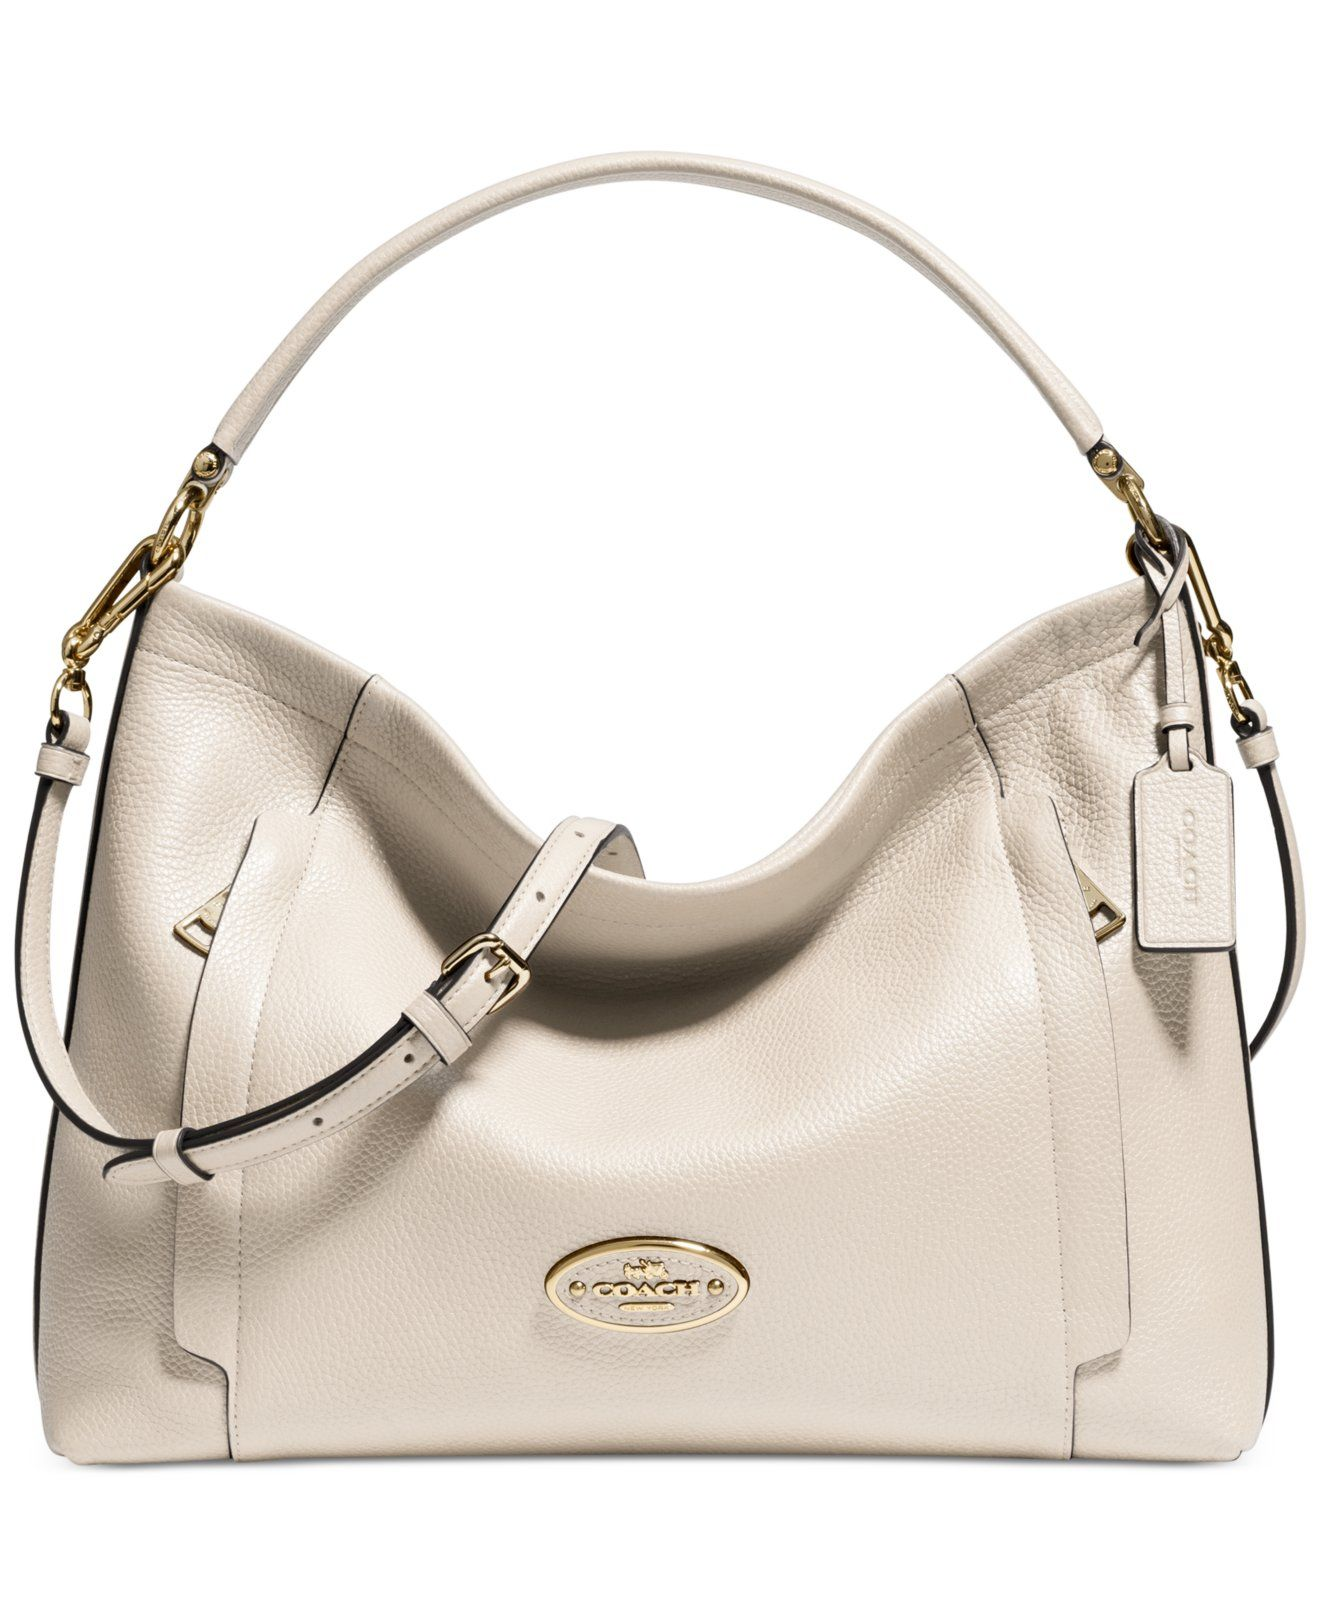 COACH SCOUT HOBO IN PEBBLE LEATHER - Color  Light Gold Chalk  love a hobo  bag! e4433baca12dc